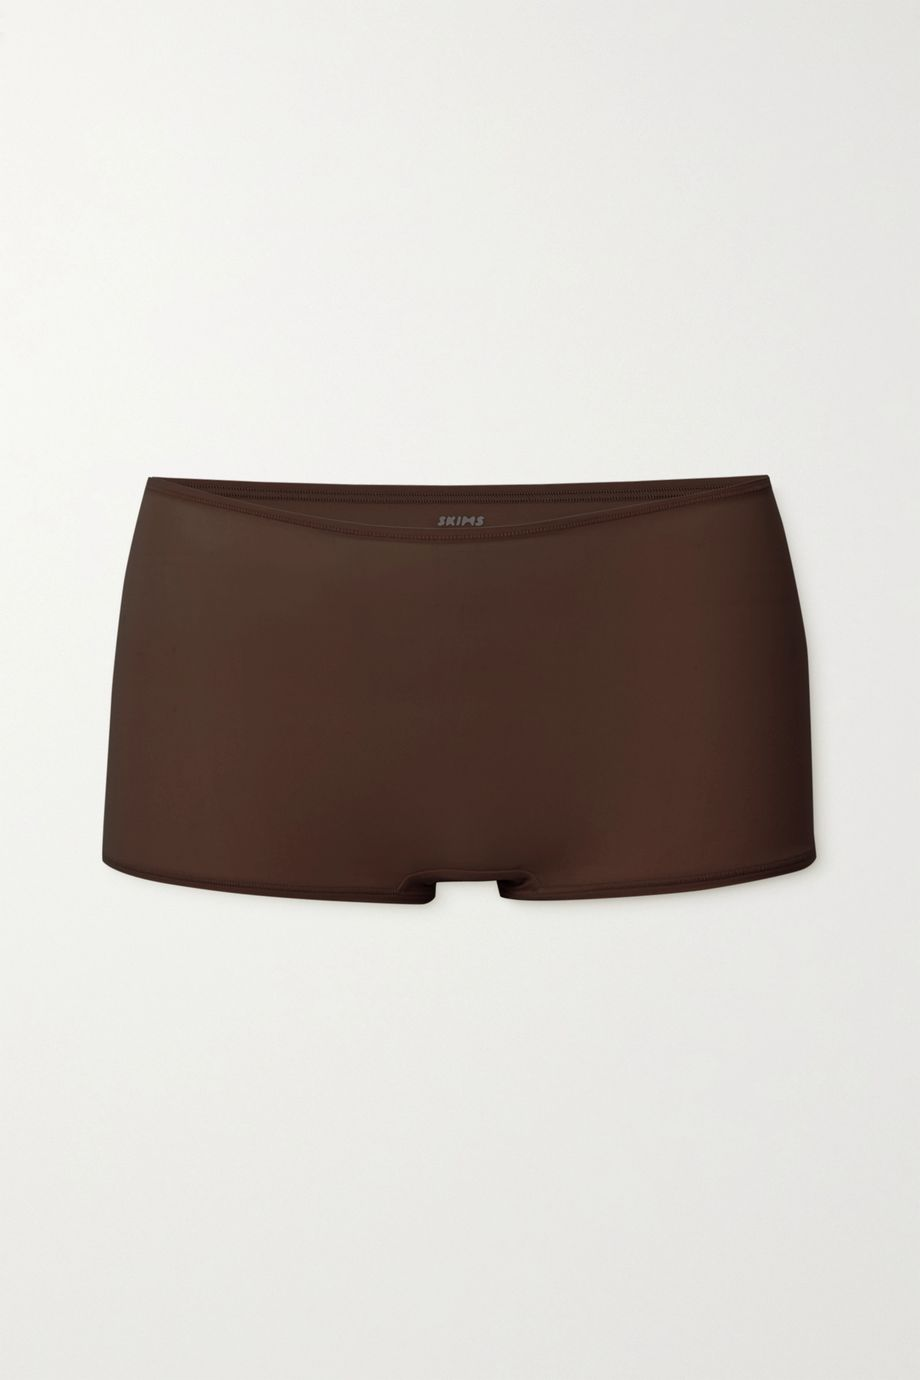 SKIMS  Fits Everybody boy shorts - Cocoa